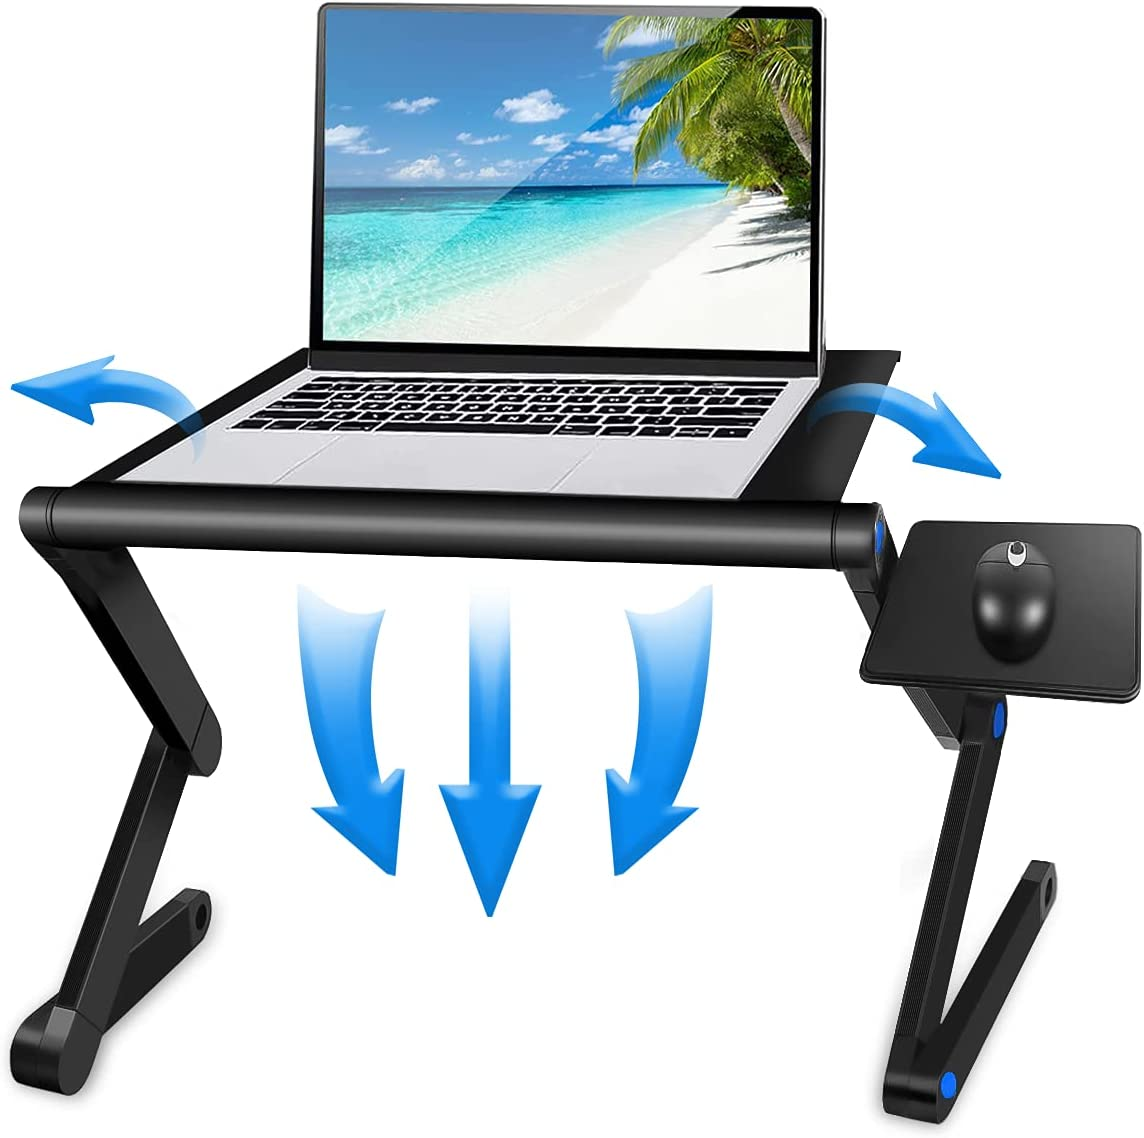 Laptop Table, Adjustable Laptop Bed Table, Laptop Computer Stand, Portable Laptop Workstation Notebook Stand Reading Holder with 2 CPU Cooling Fans and Detachable Mouse Pad in Bed Couch Sofa Office